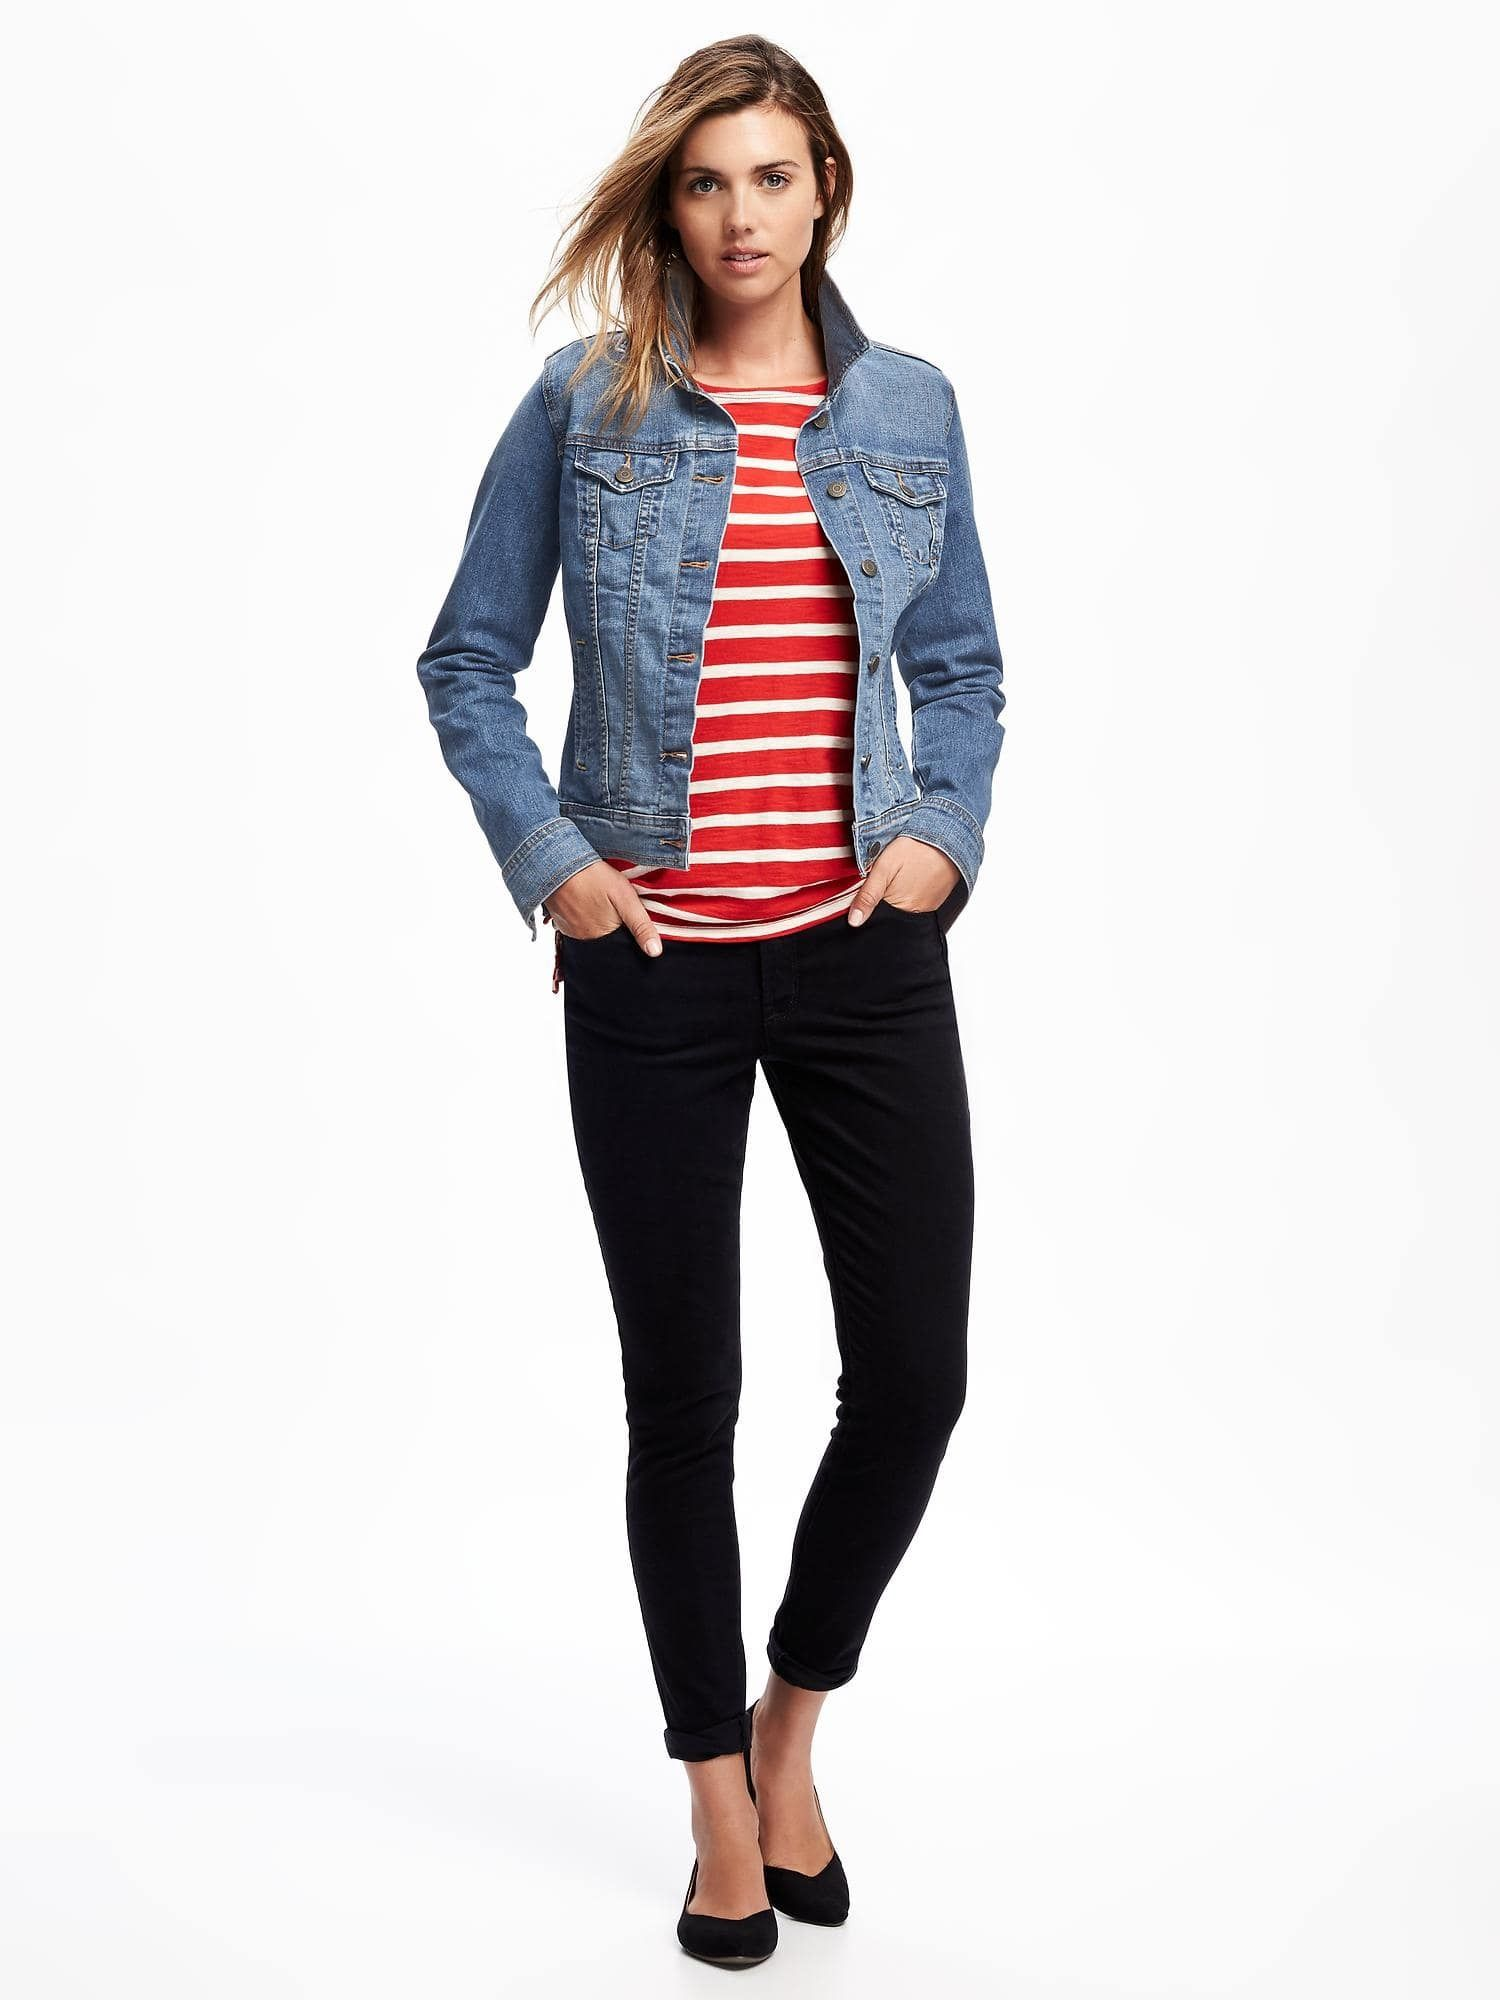 Women's Blue Denim Jacket, White and Red Horizontal